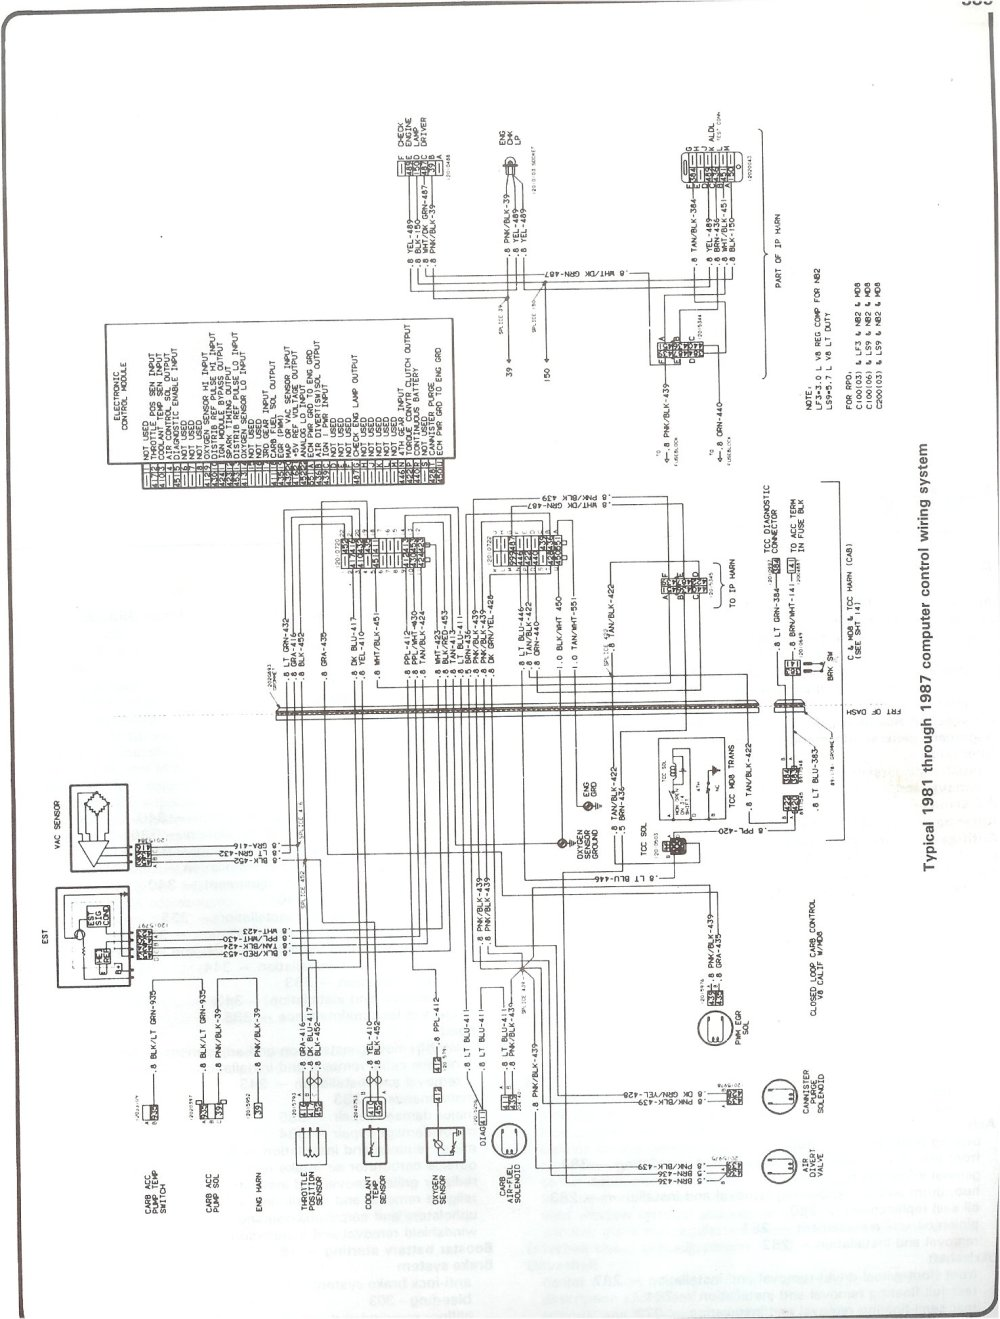 medium resolution of dresser 8 check valve diagram wiring diagram dresser wiring diagram